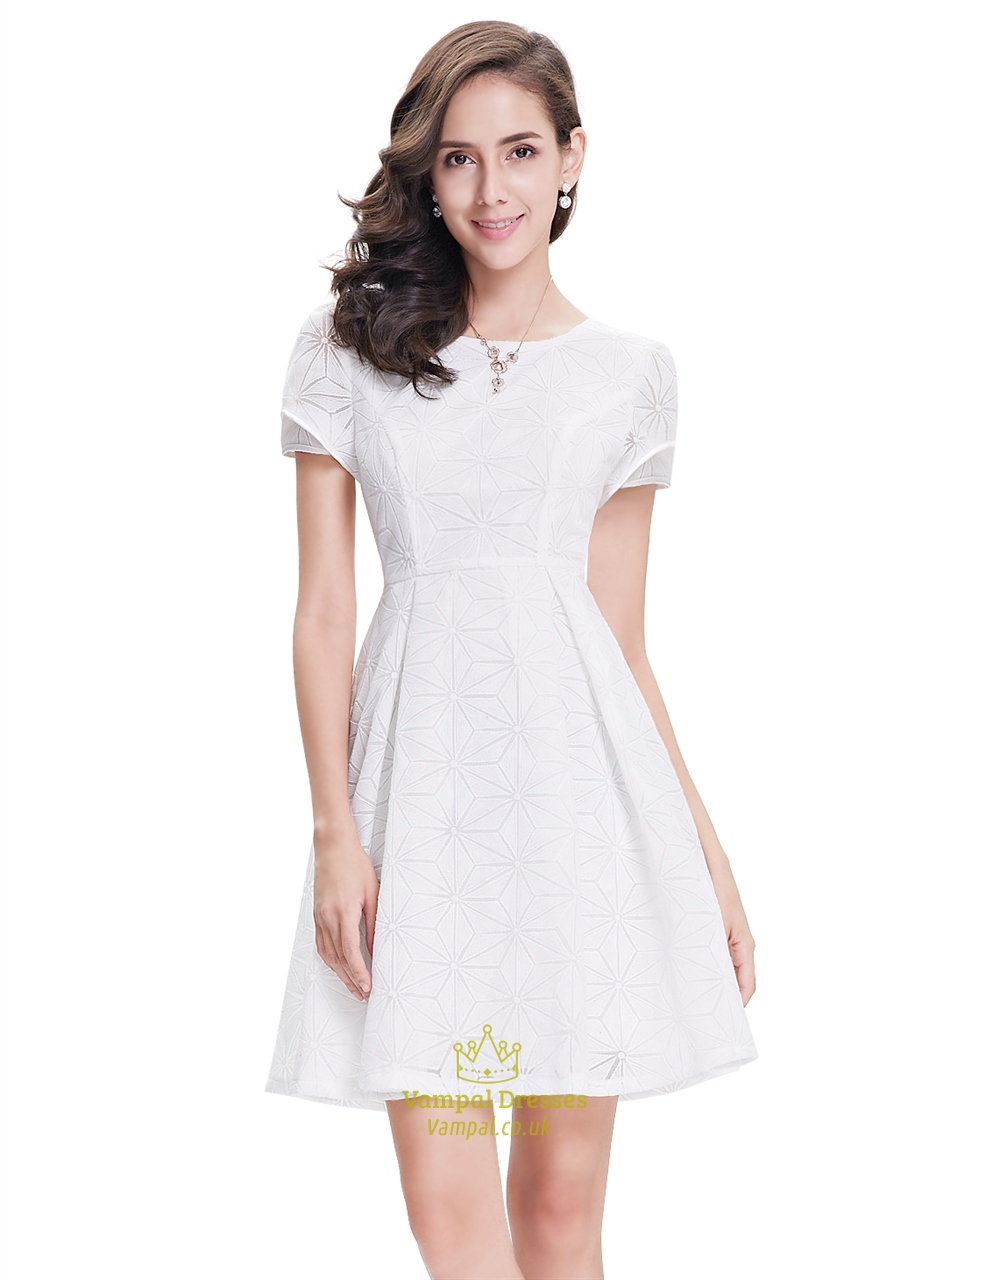 Elegant White Short Semi Formal Dresses With Short Sleeves Vampal